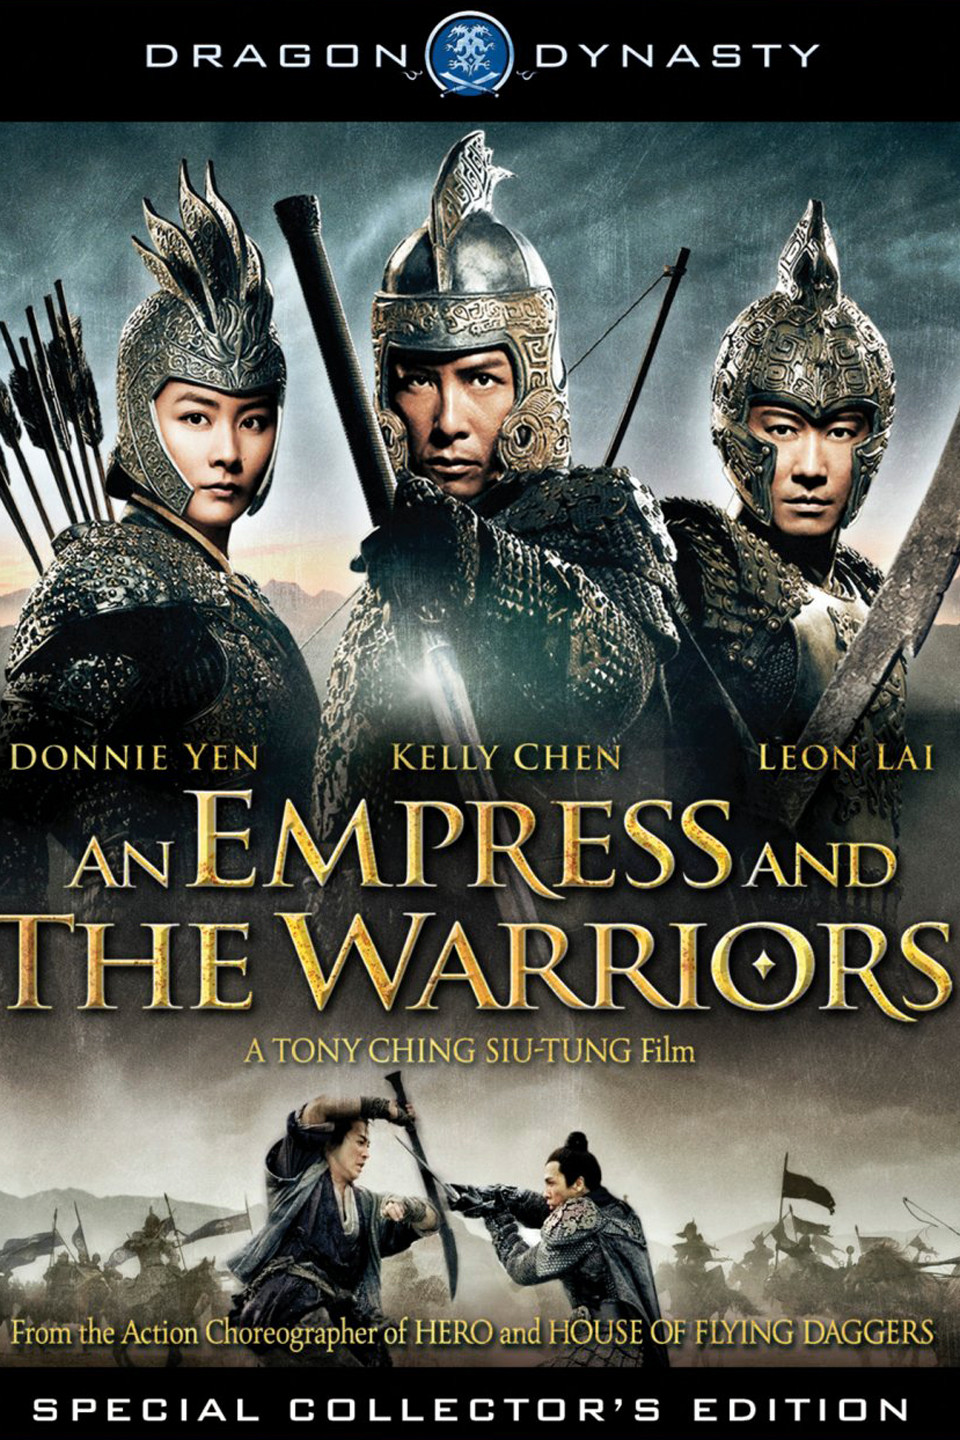 An Empress and the Warriors-Jiang shan mei ren